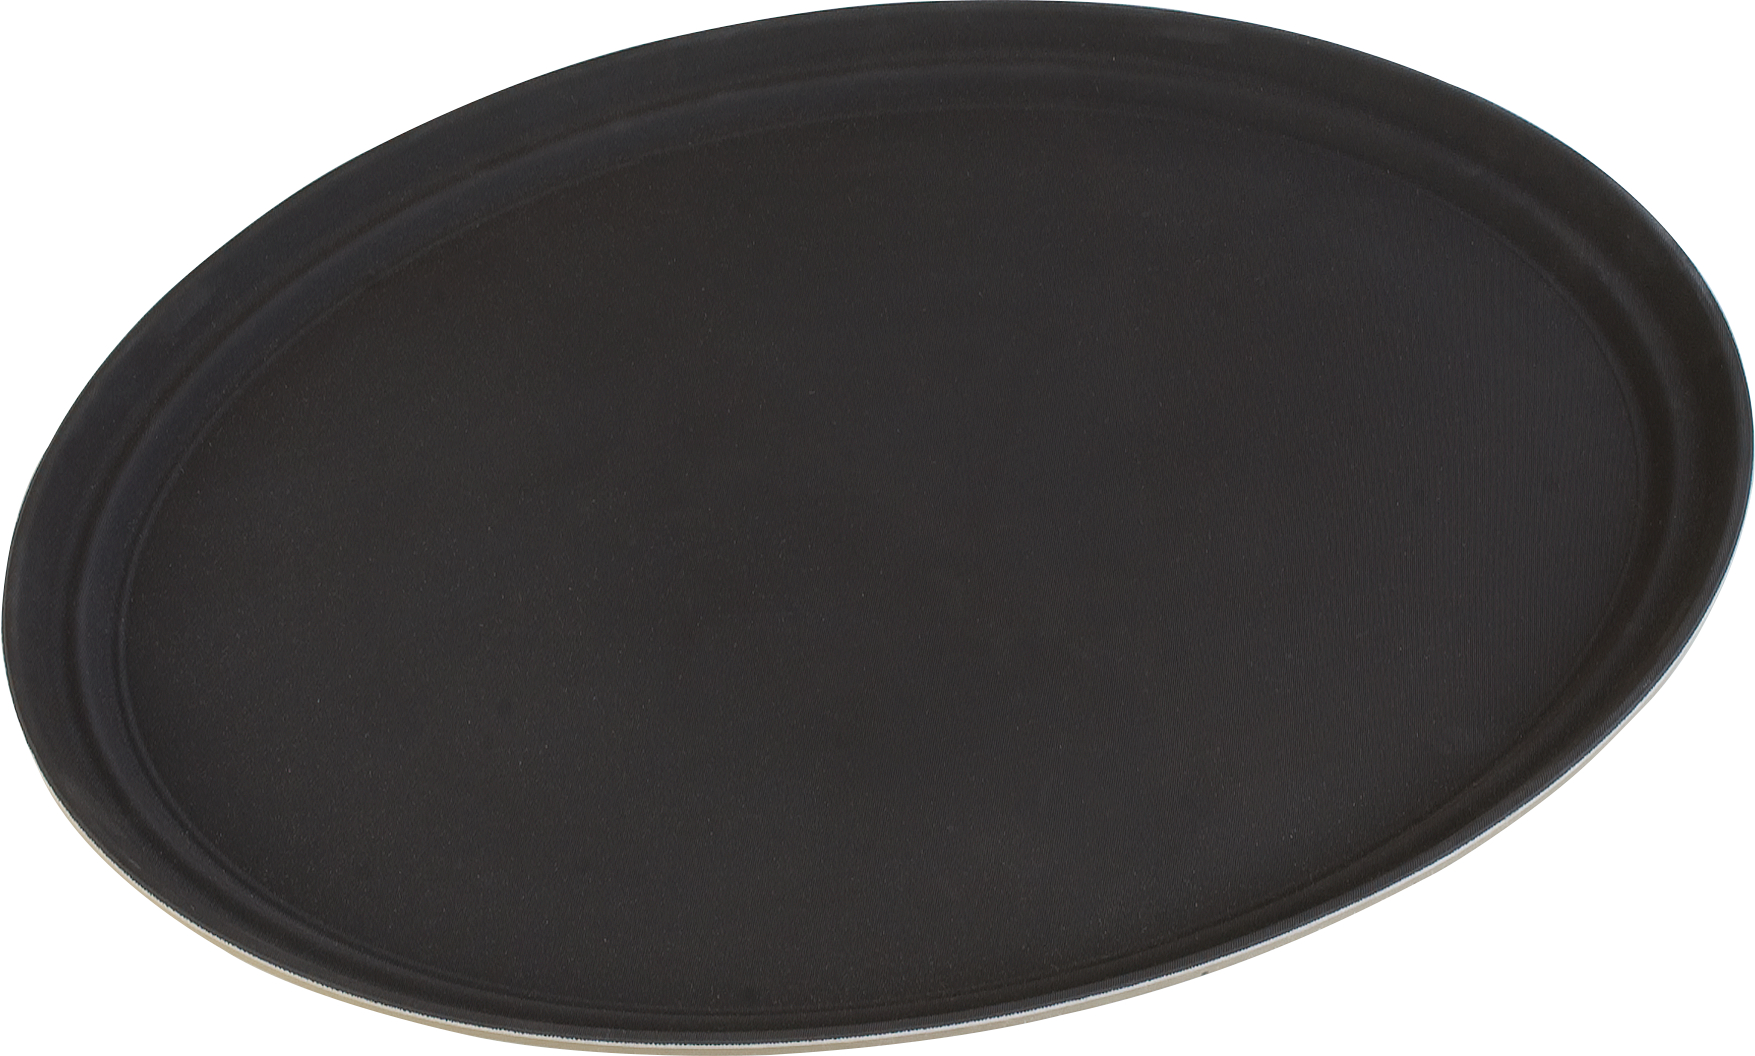 Truebasics Oval Grip Tray 25 x 20.5 - Toffee Tan